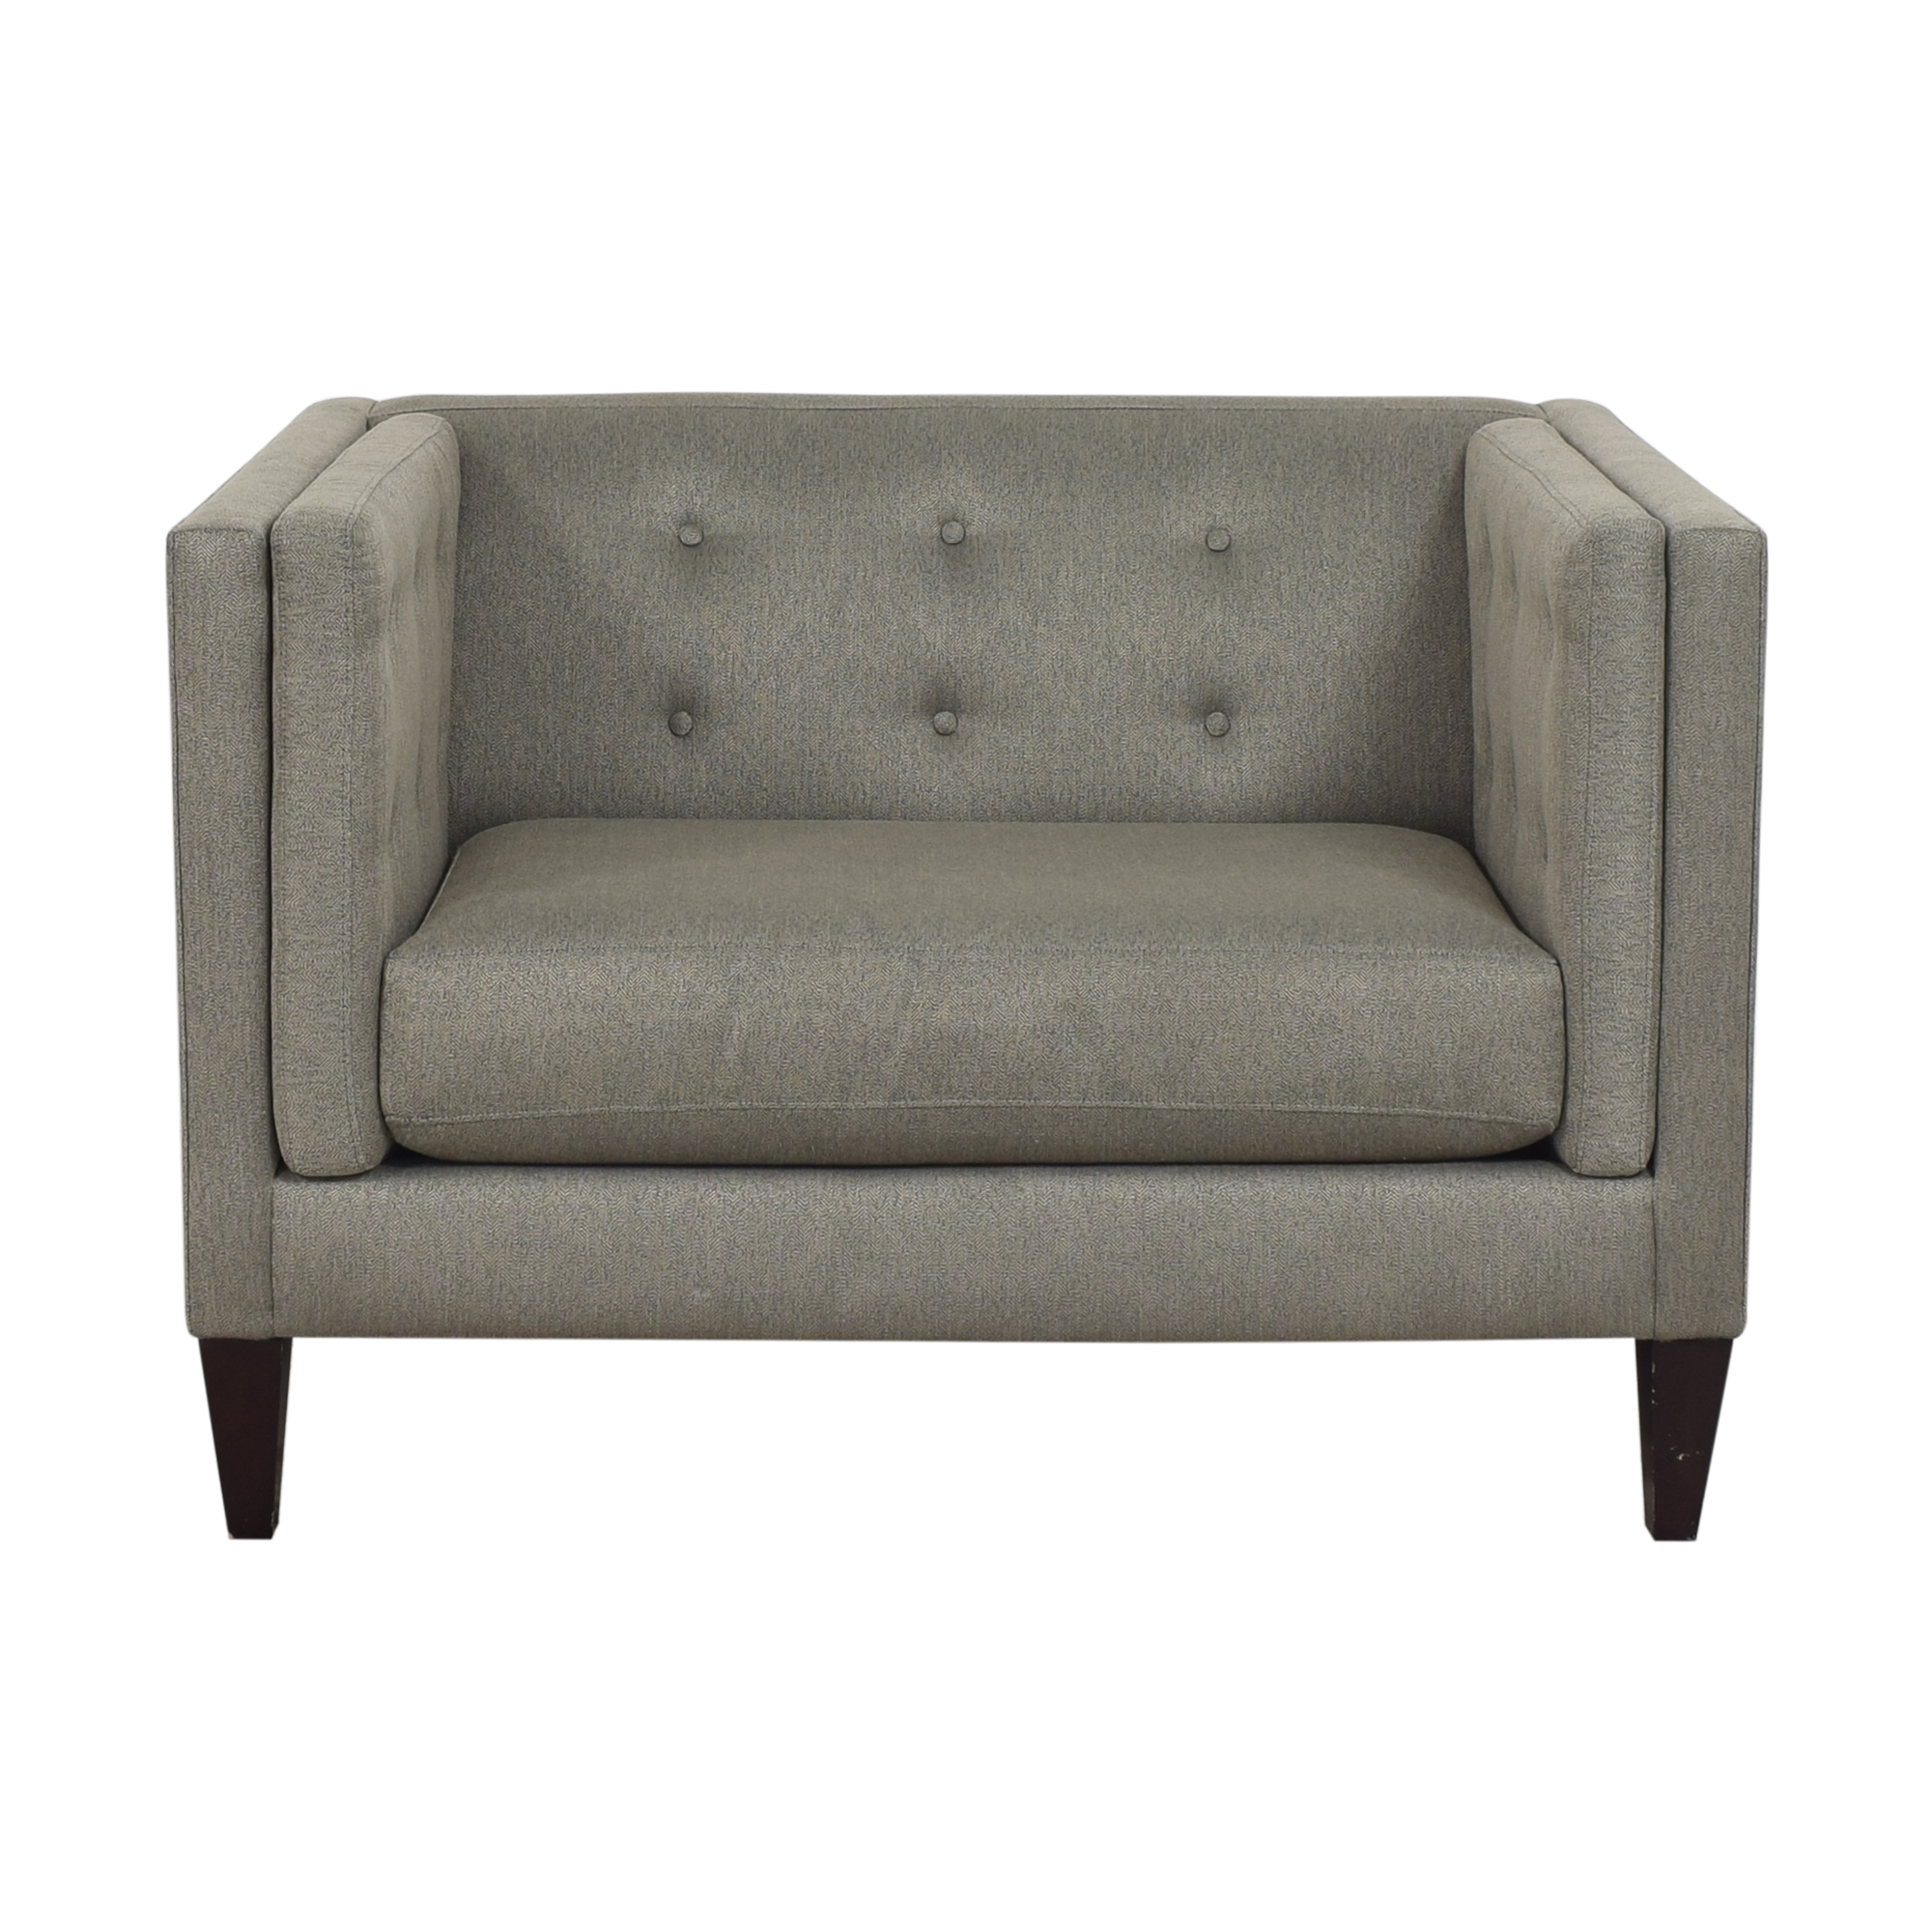 Crate & Barrel Aidan Tufted Chair and a Half / Chairs